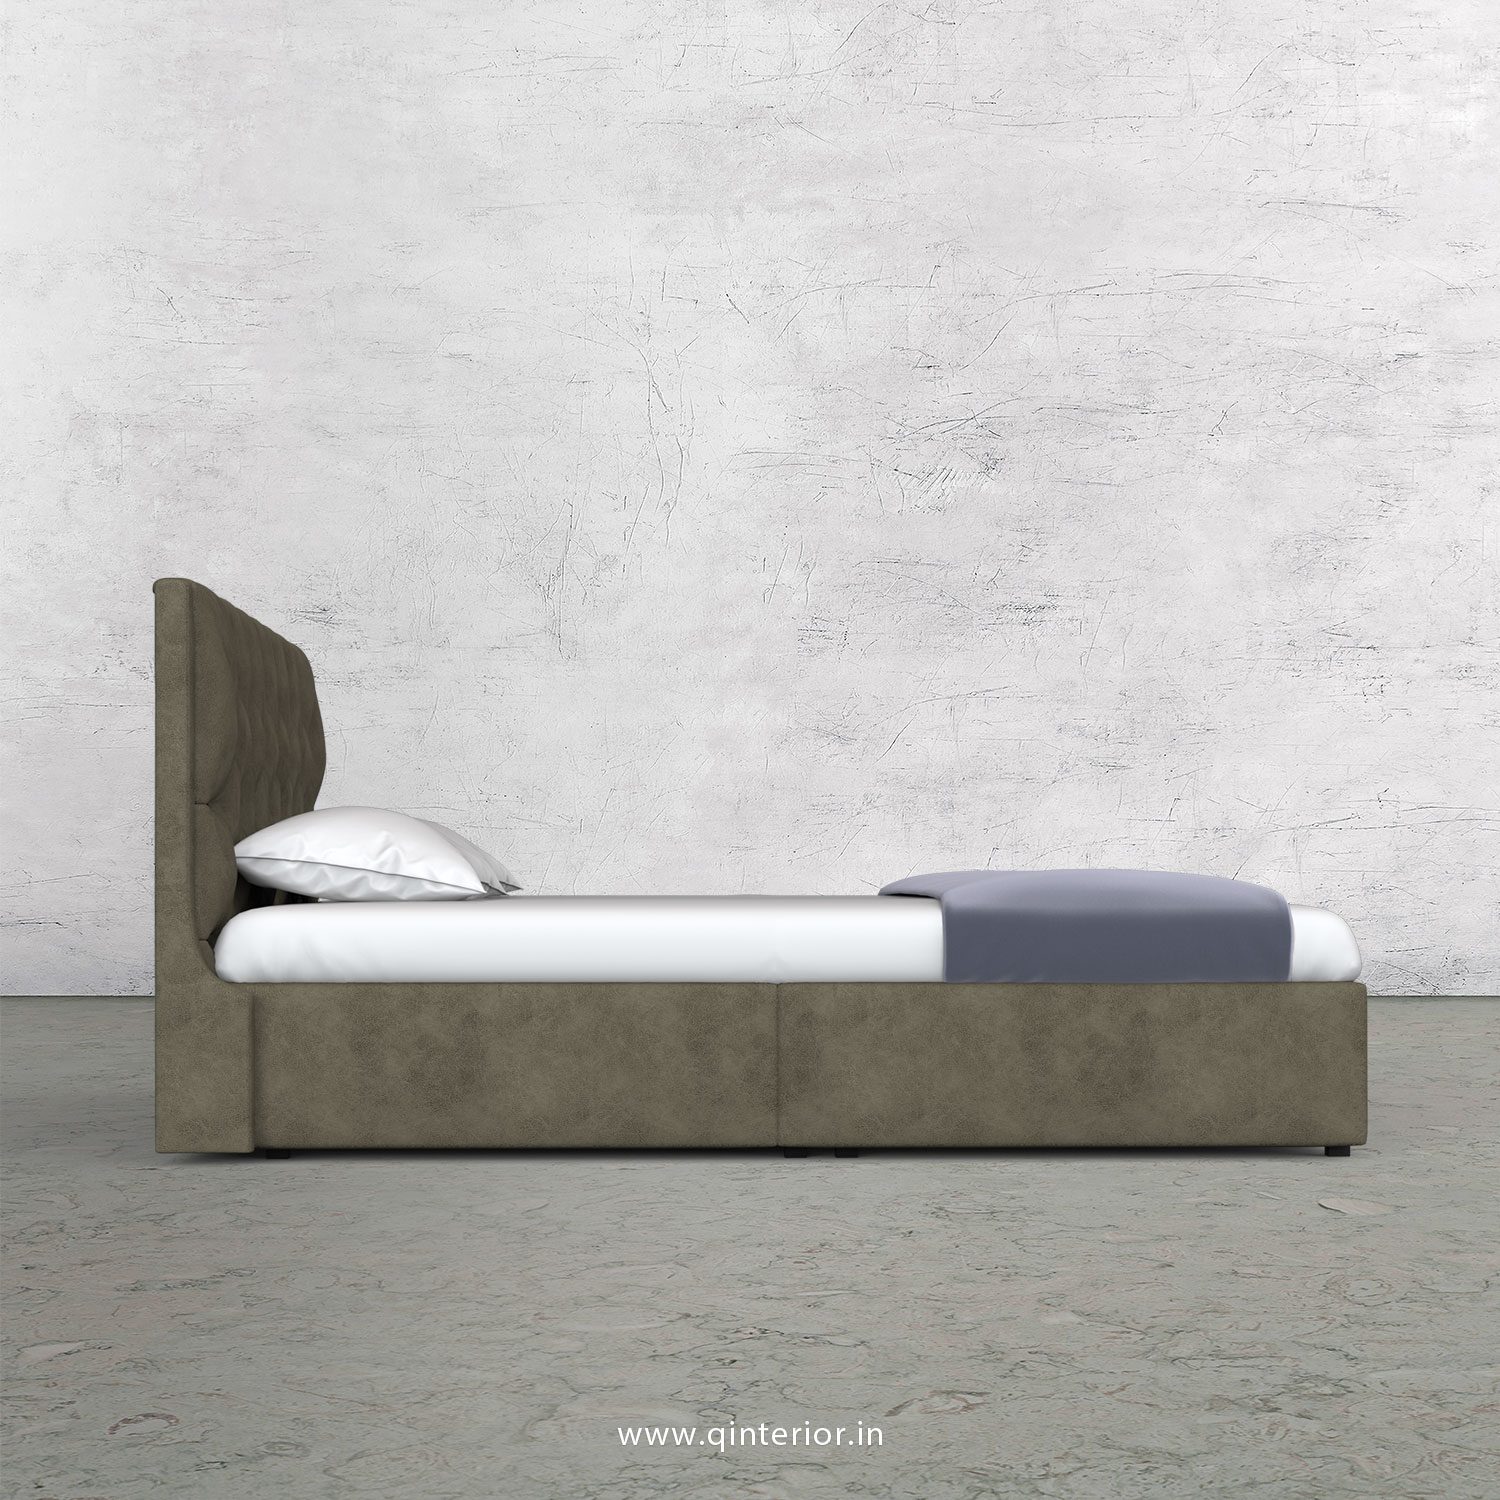 Scorpius Queen Bed in Fab Leather Fabric - QBD009 FL03